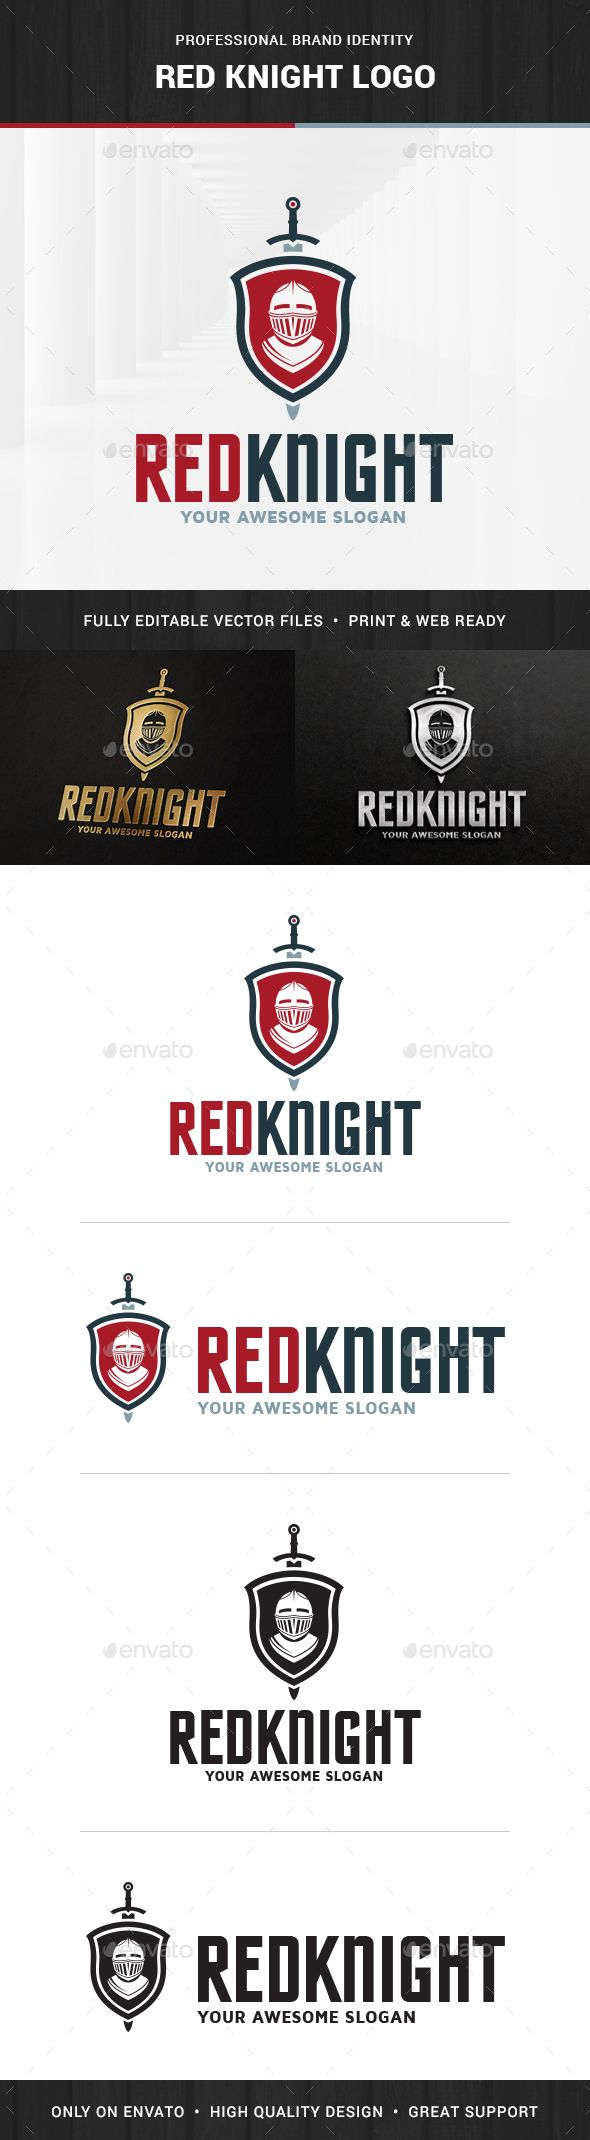 Red Knight Logo Template — Photoshop PSD #crest #ancient • Available here → https://graphicriver.net/item/red-knight-logo-template/15391655?ref=pxcr